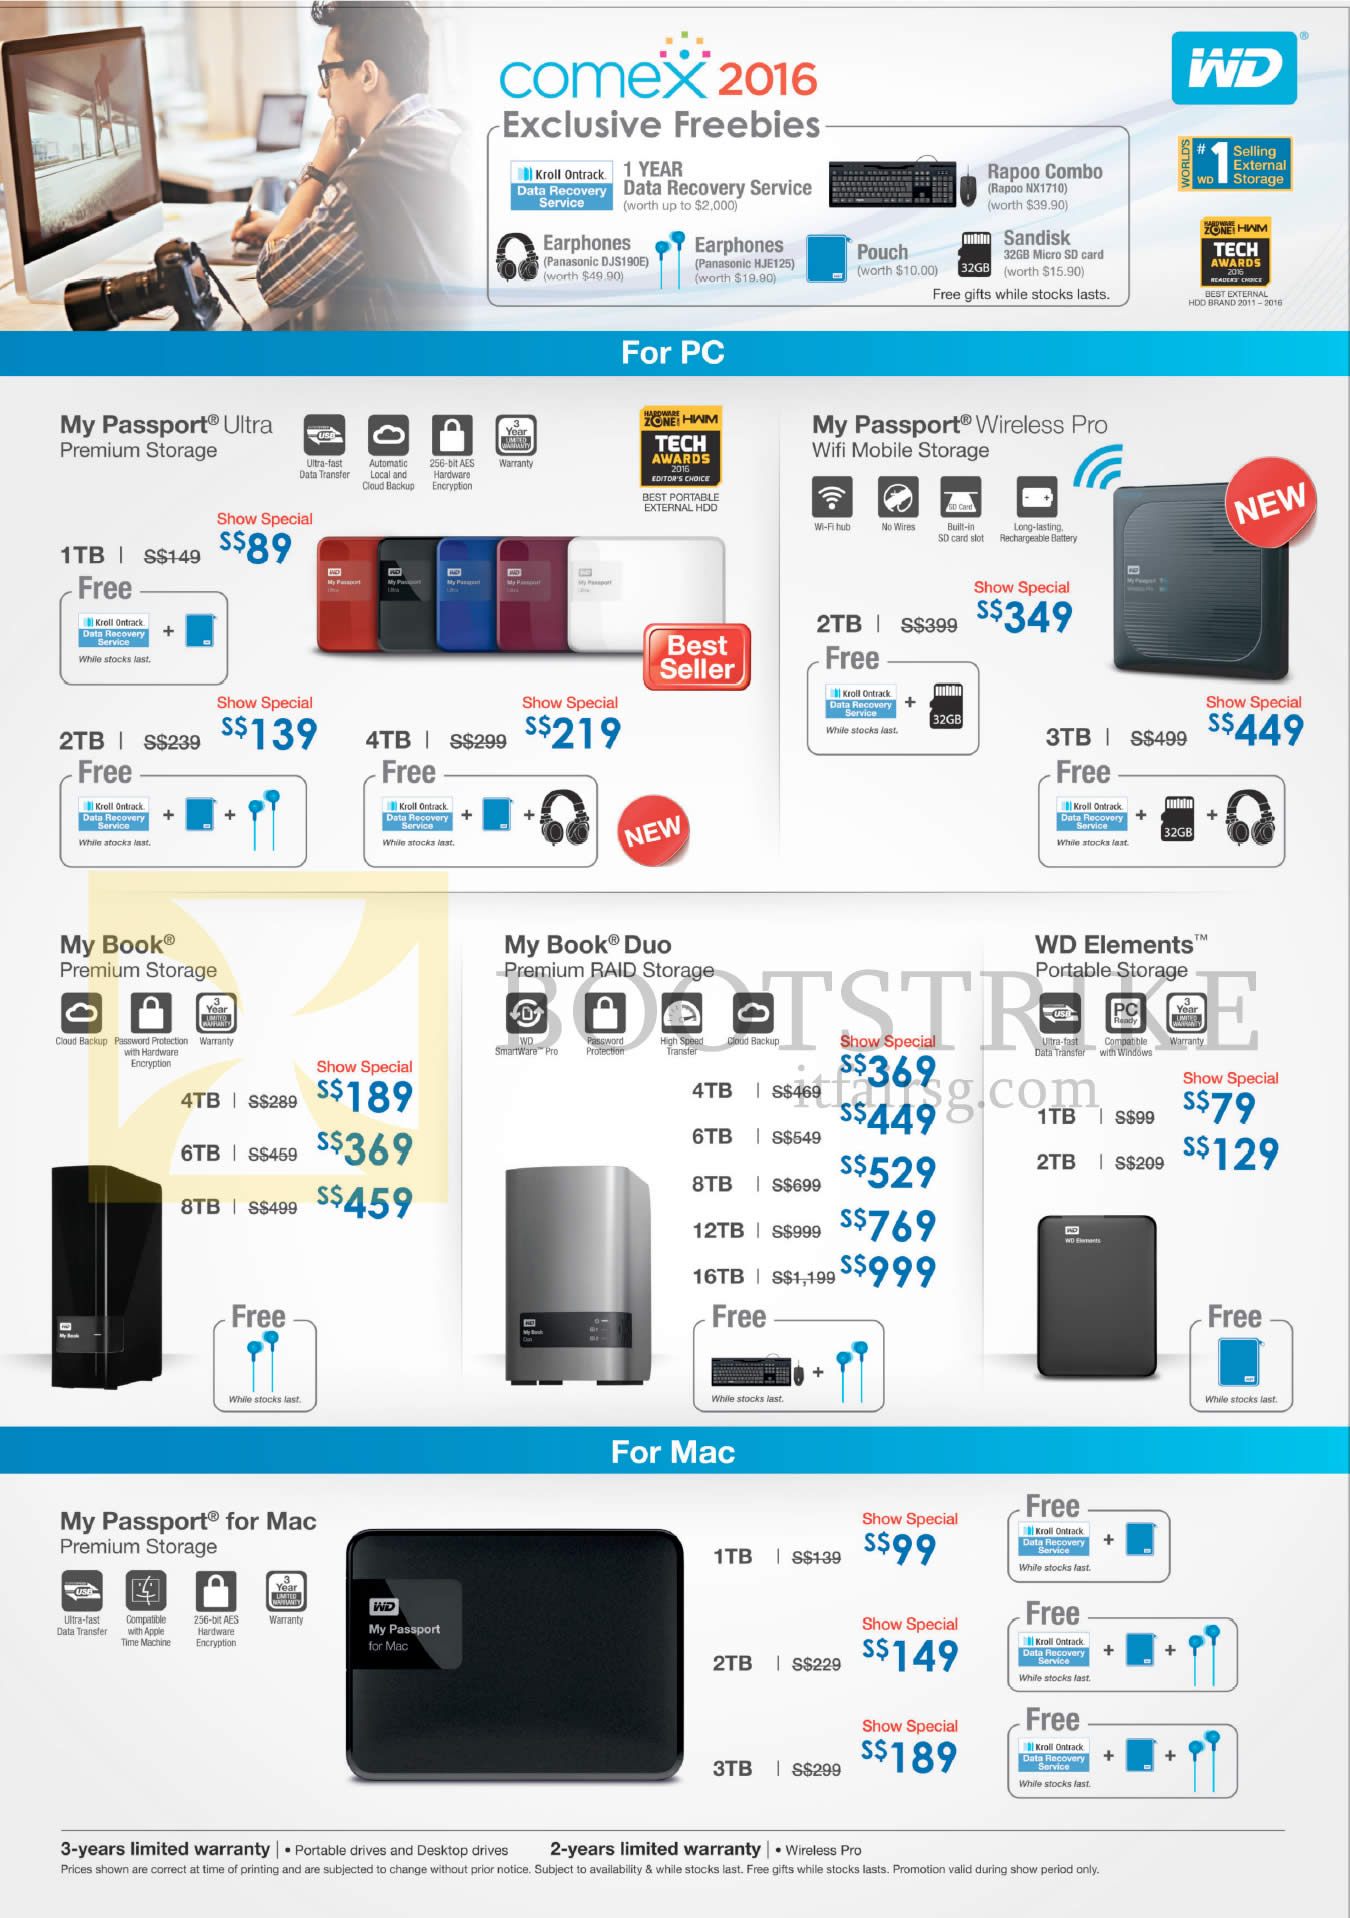 COMEX 2016 price list image brochure of Western Digital Hard Disk Drives My Passport, Wireless Pro, My Book, Duo, WD Elements, My Passport For Mac